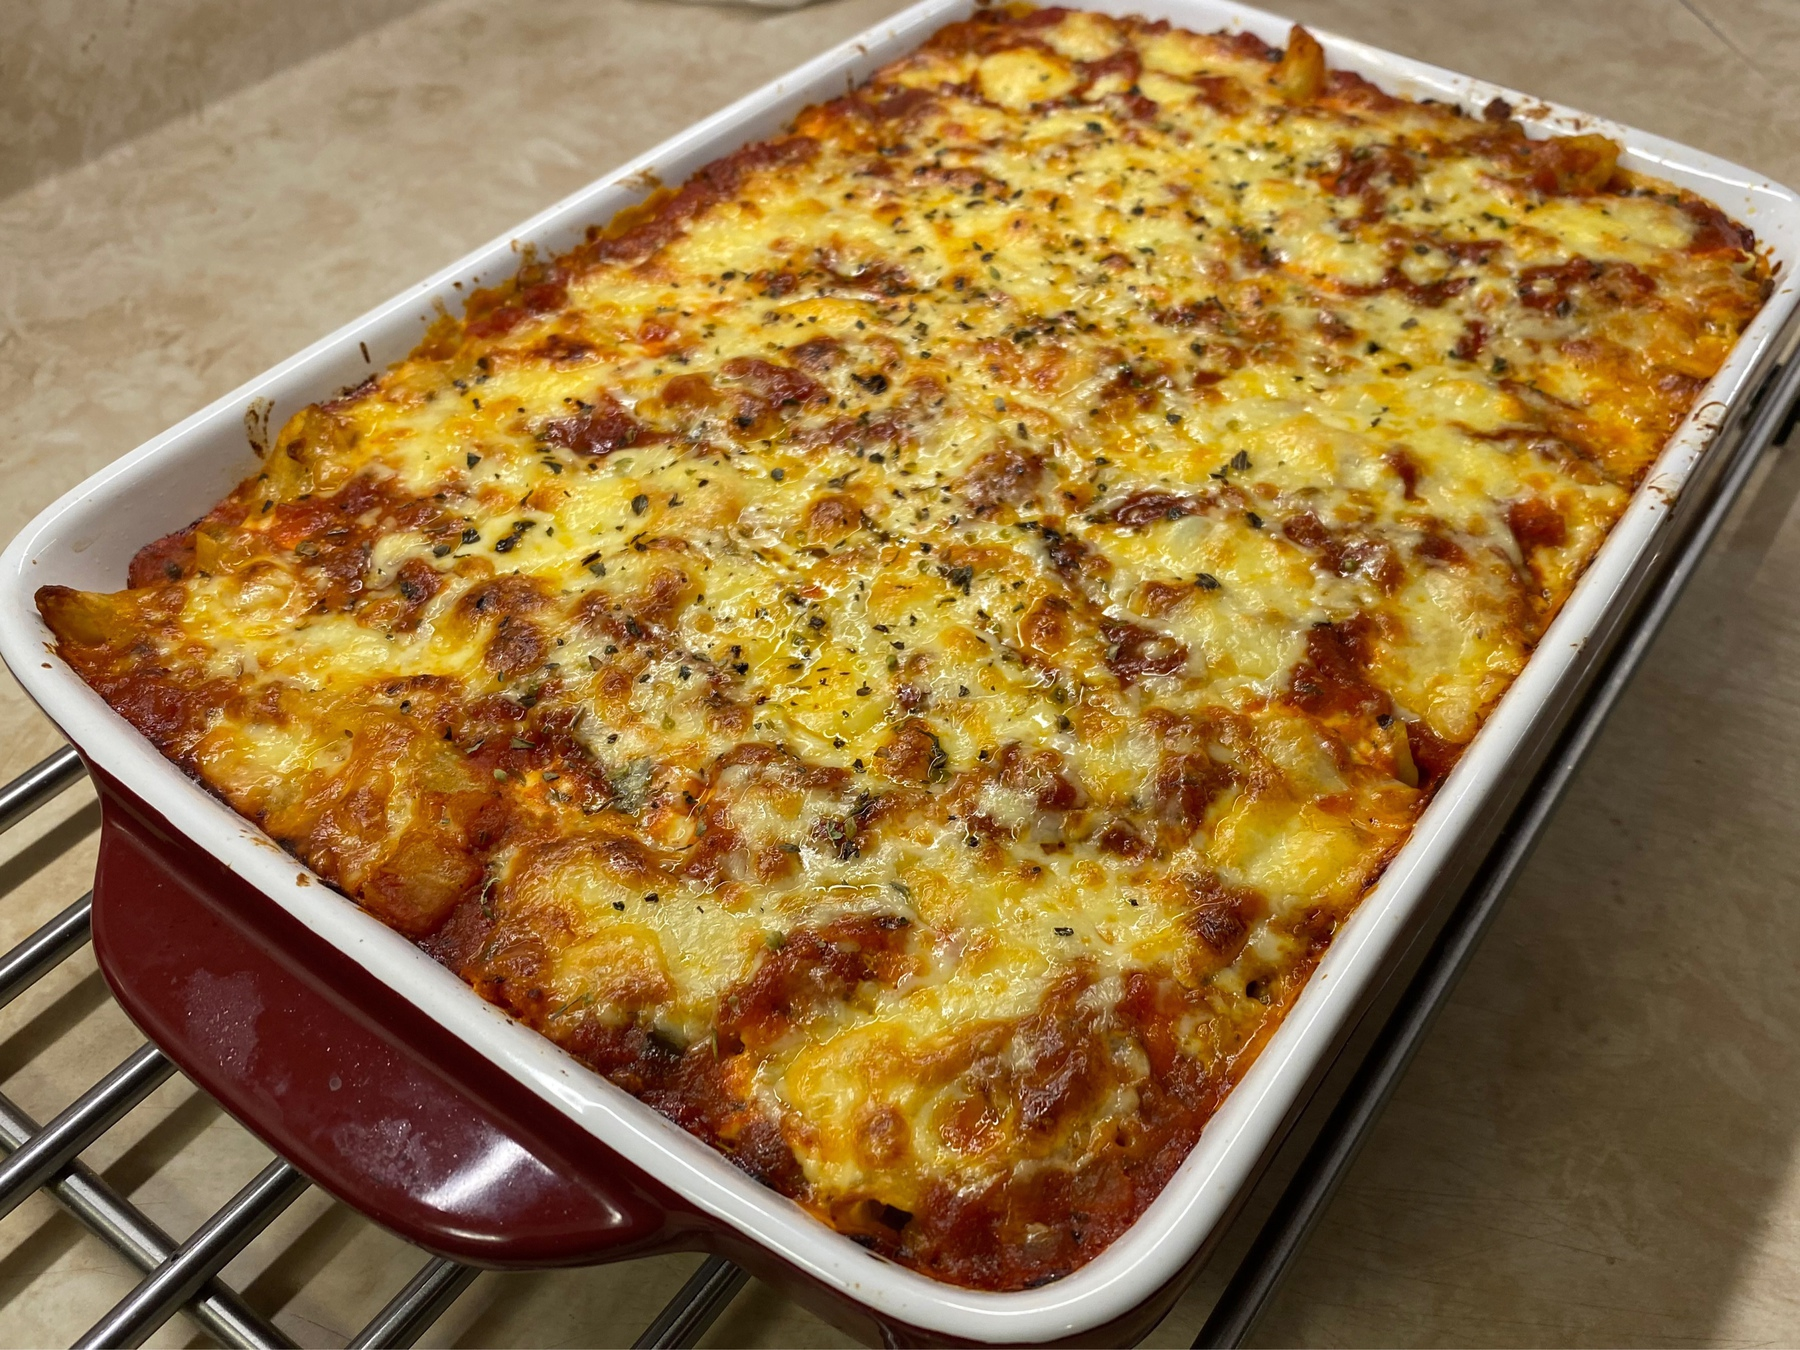 Baked pasta with cheese on top sitting on metal rack.